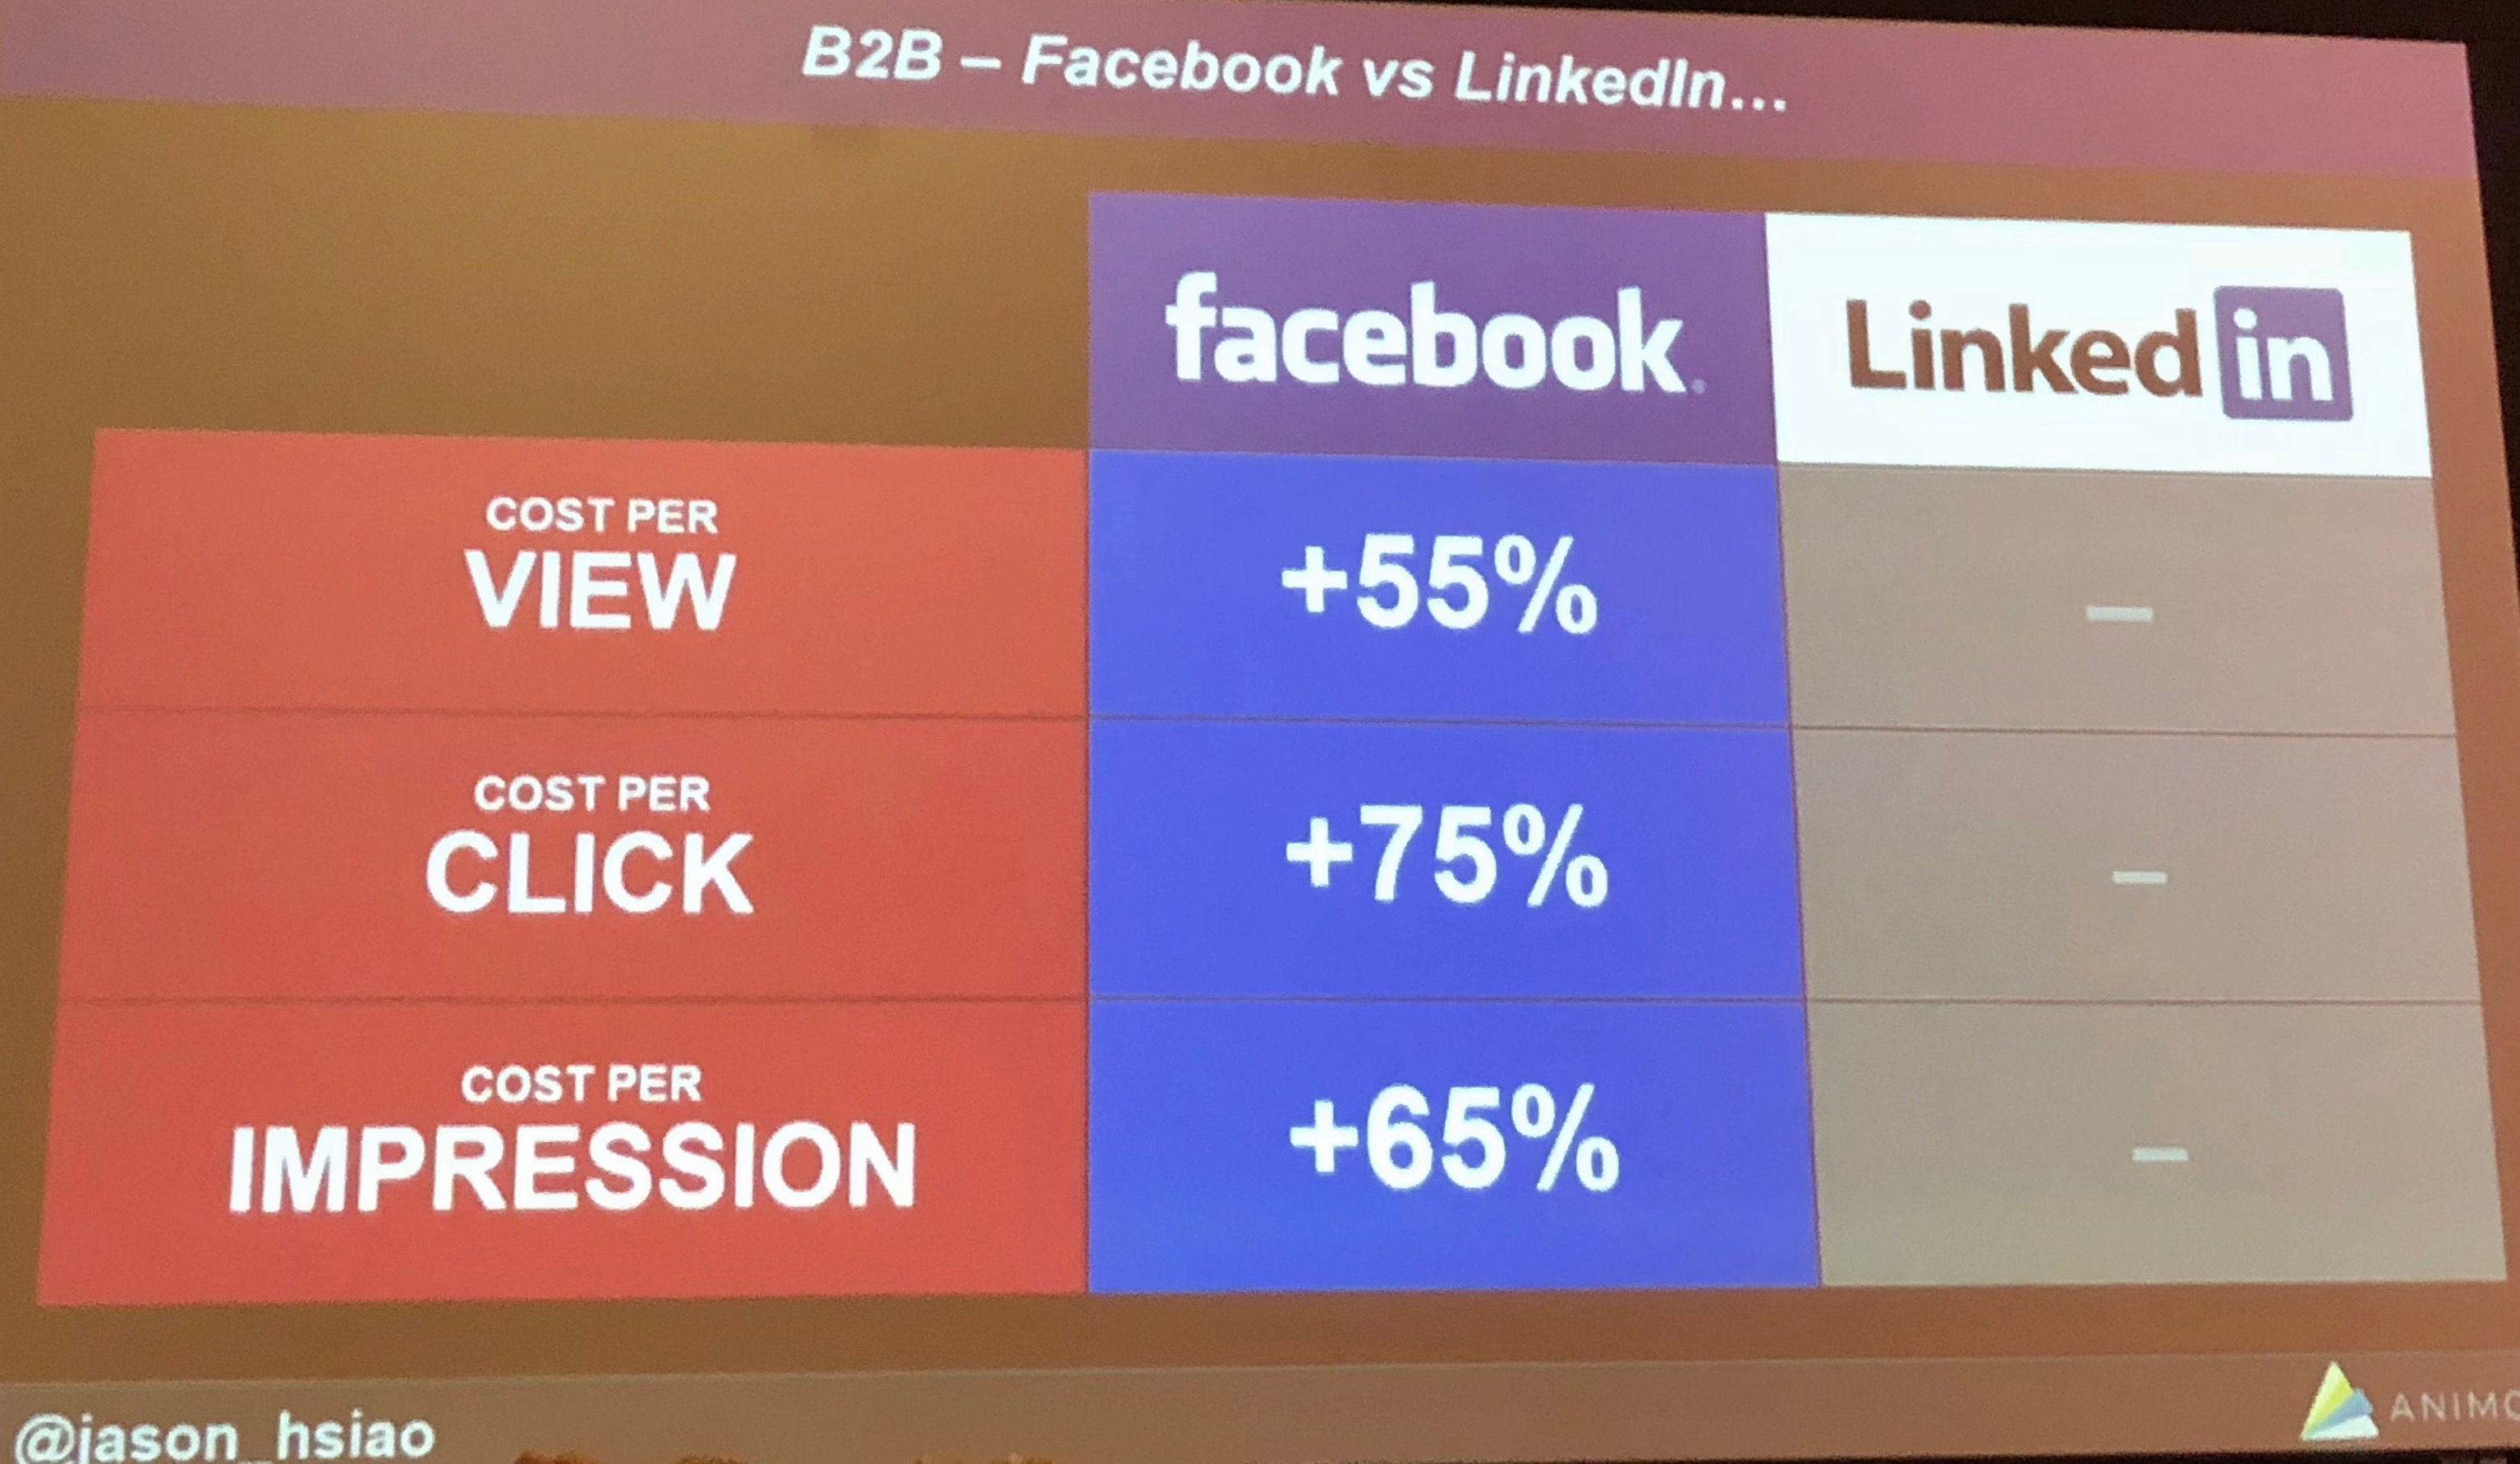 Facebook ads versus LinkedIn ads performance